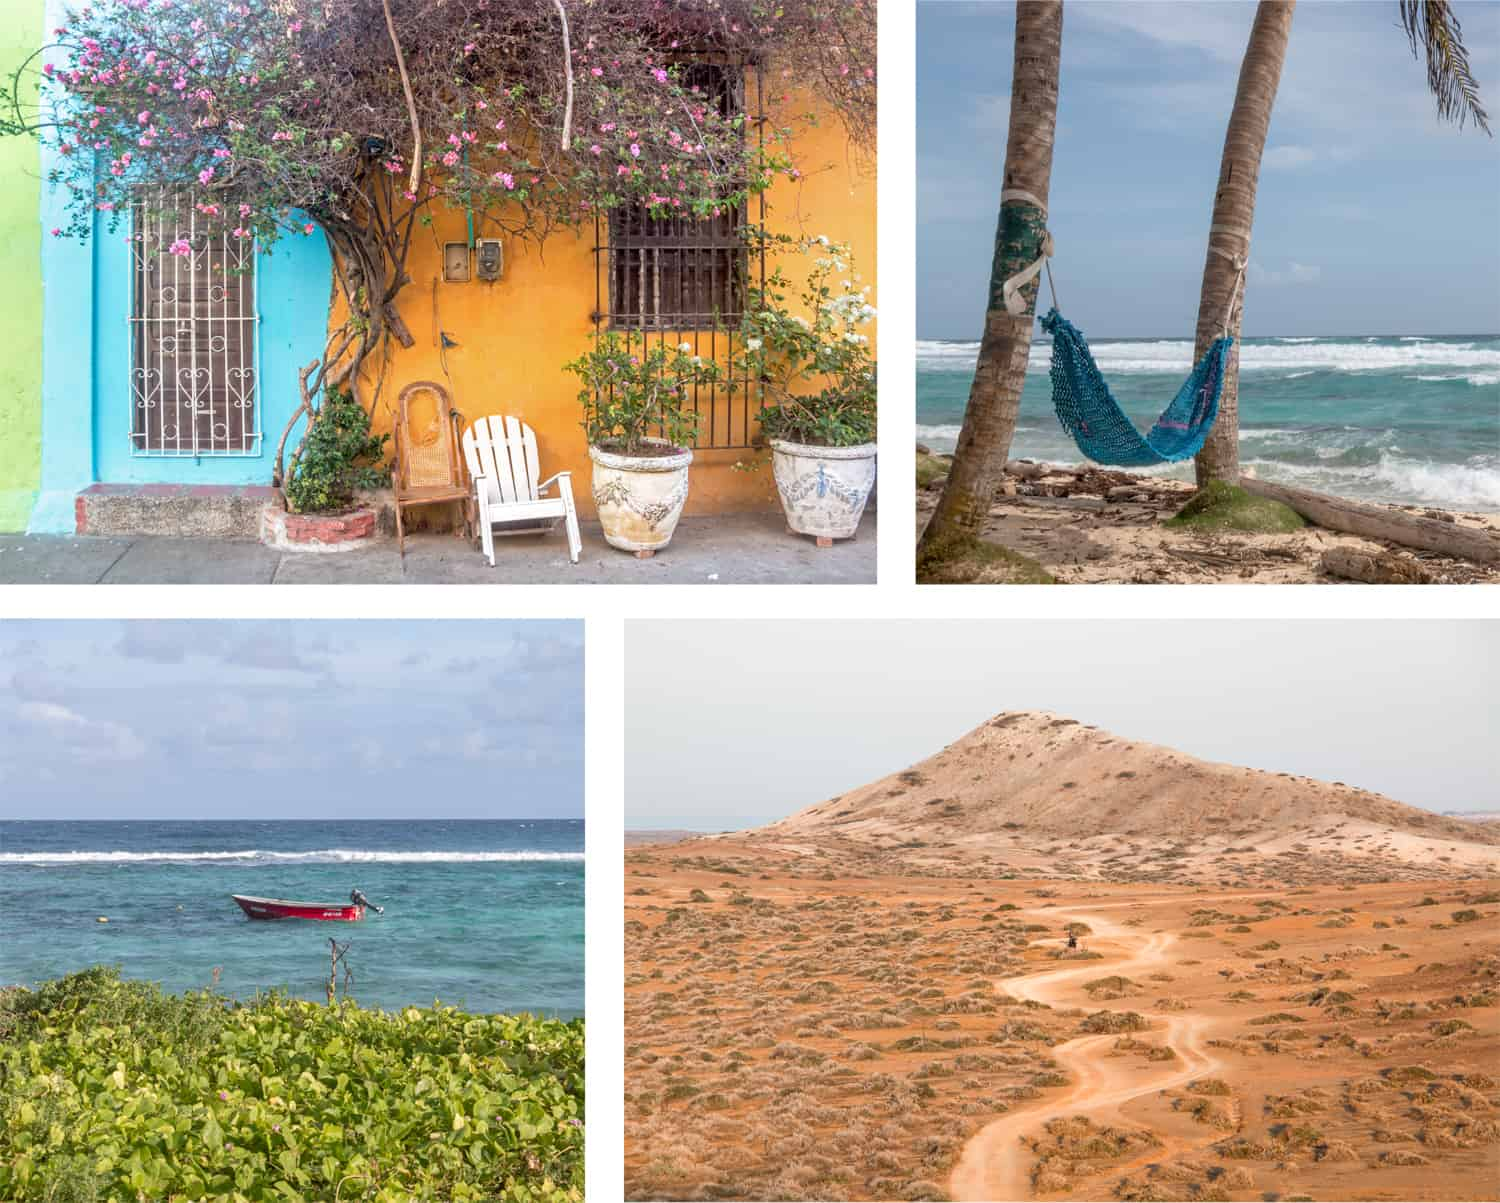 Random images from Colombia featuring a house, a hammock on a beach, a boat in the water, and a desert road.